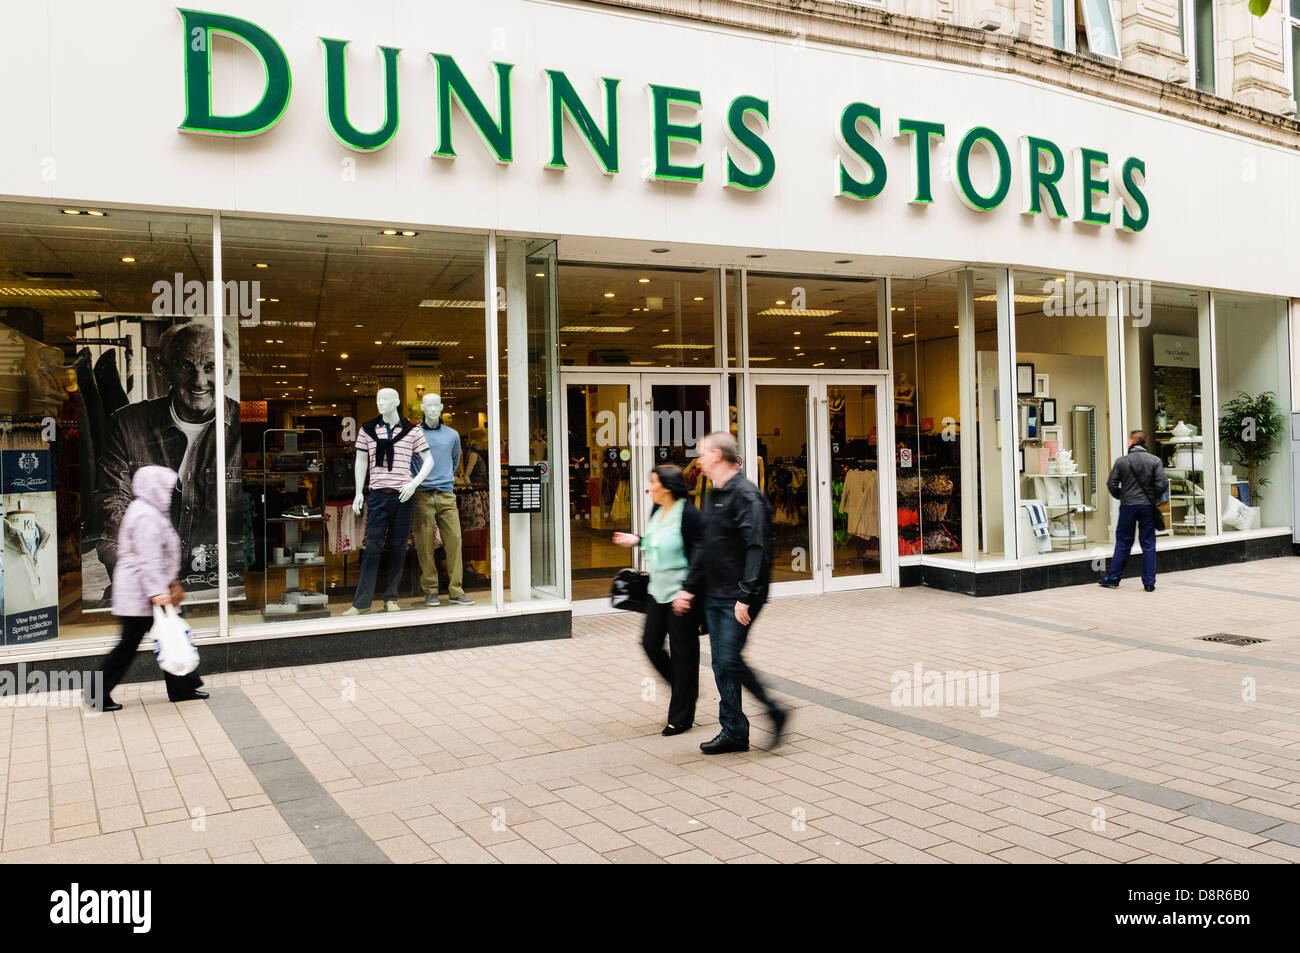 Dunnes stores girls clothes